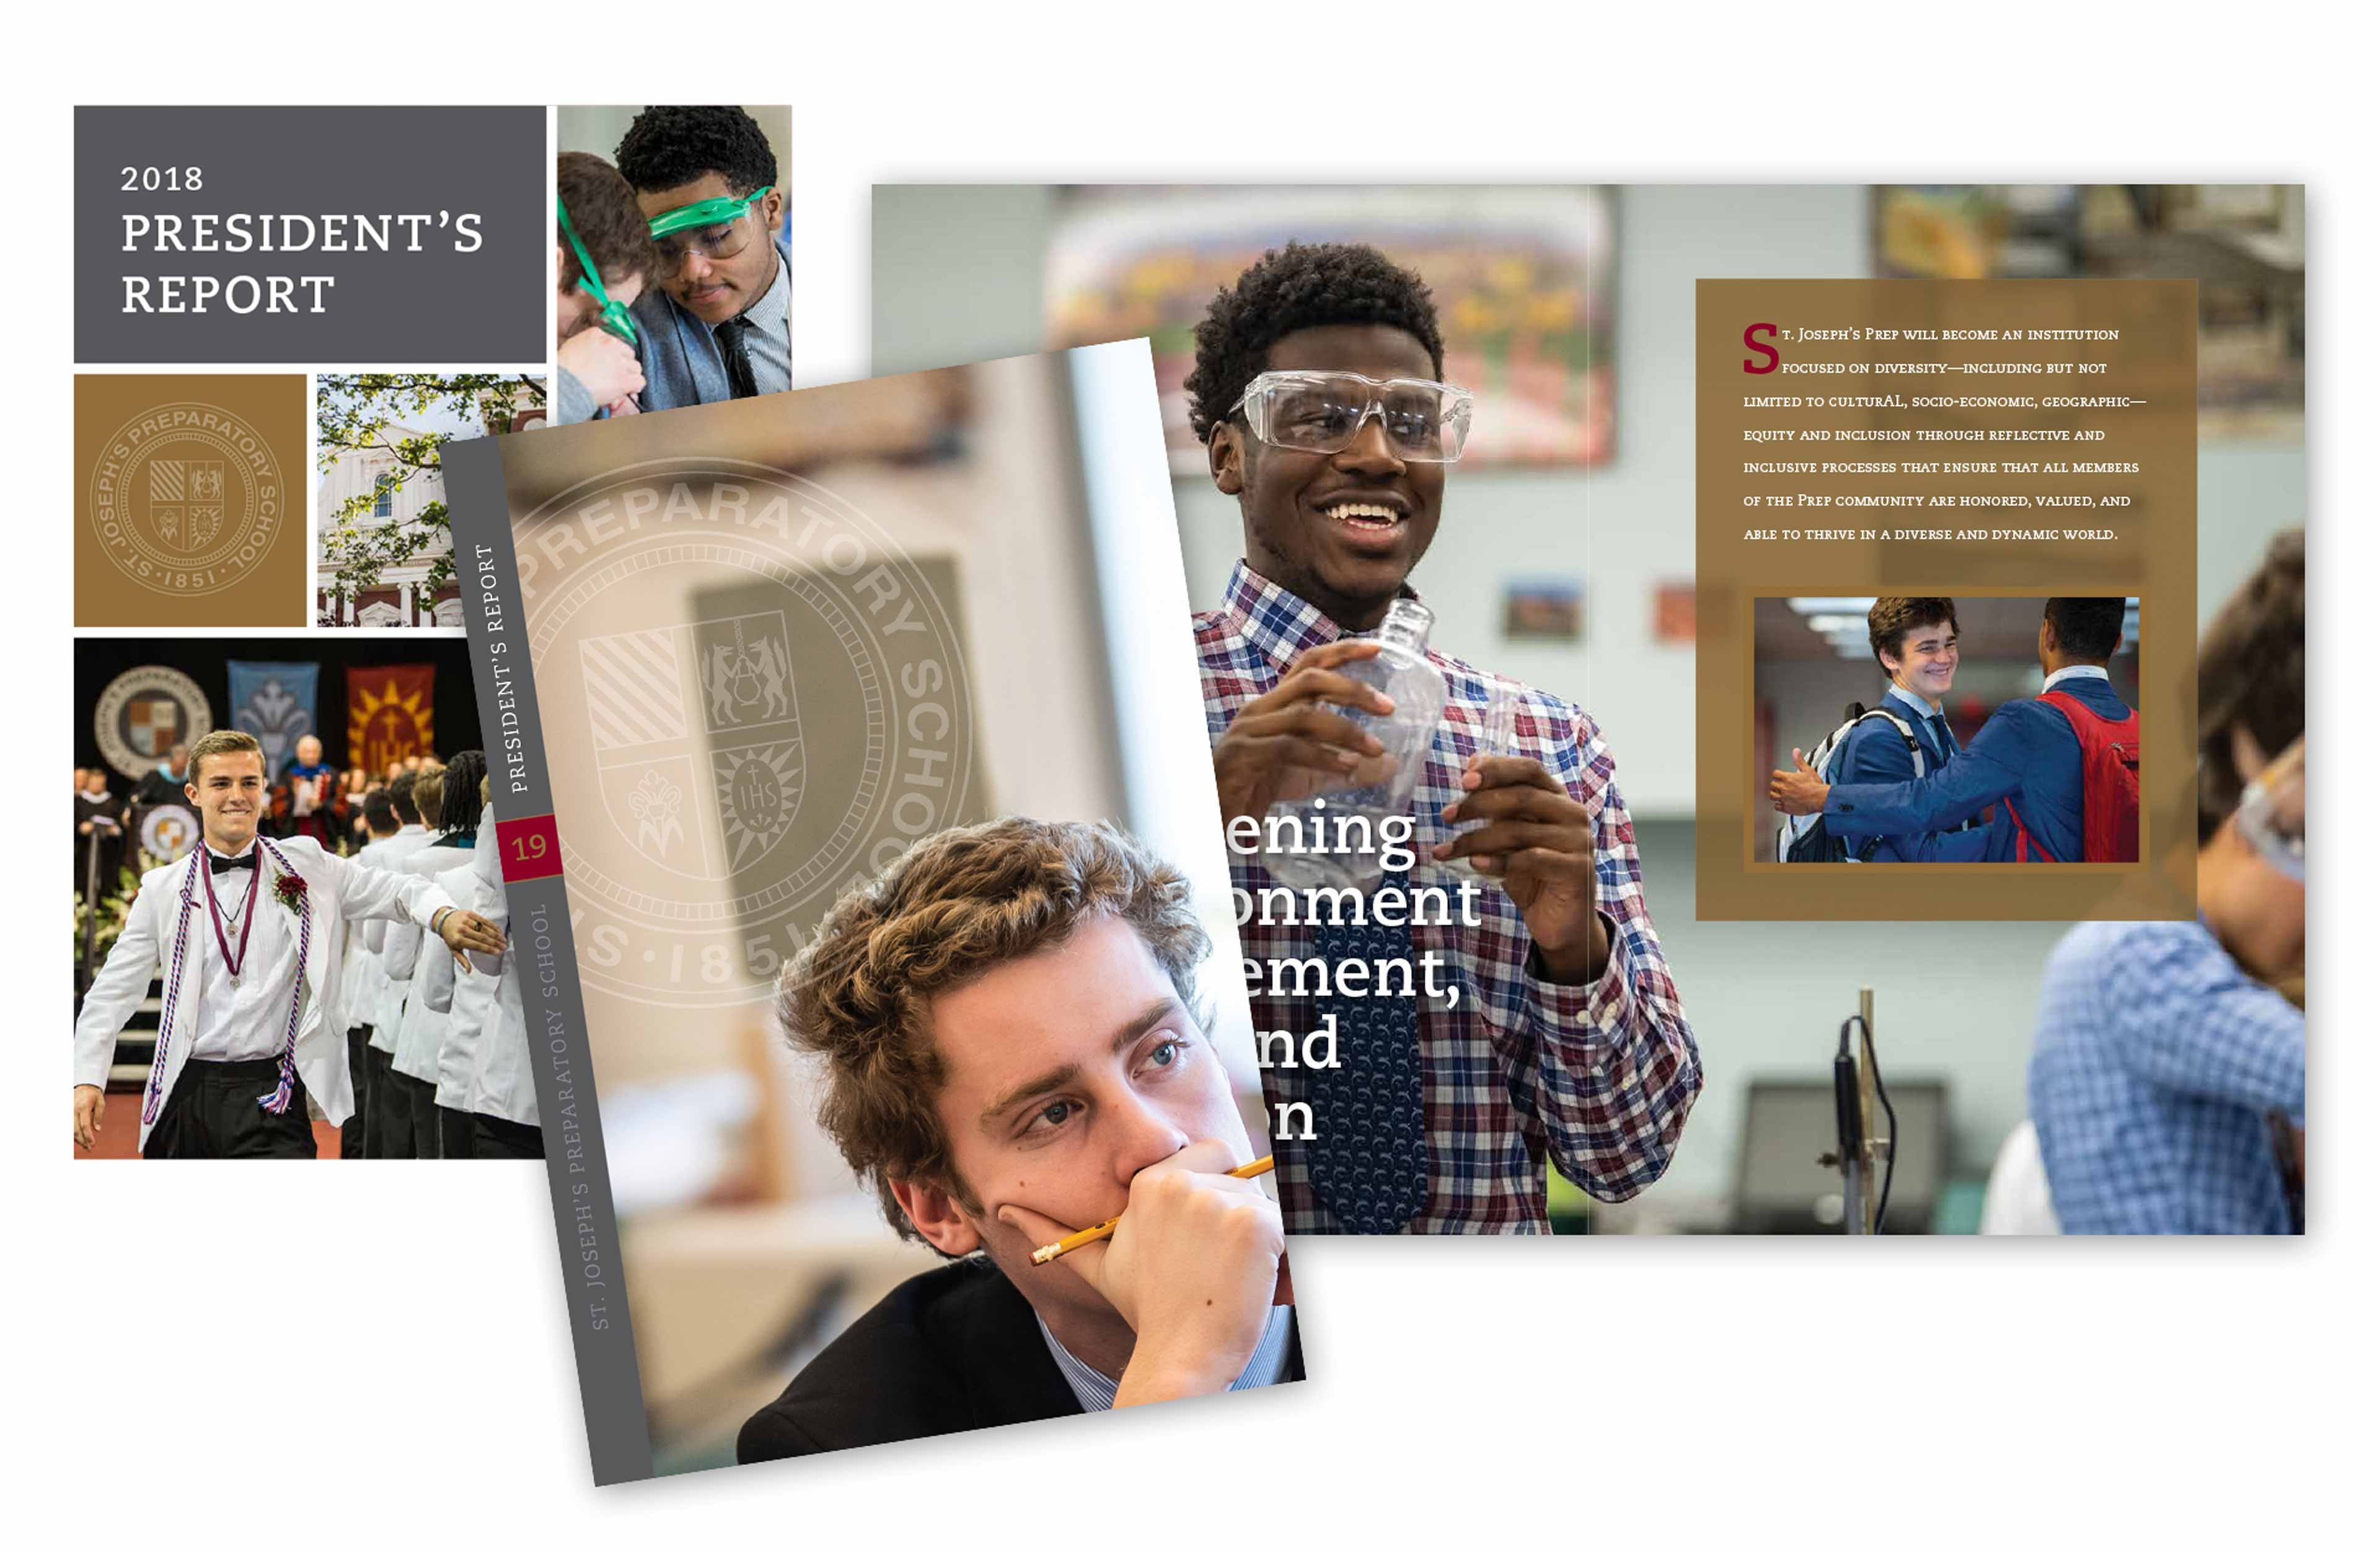 Independent school annual report